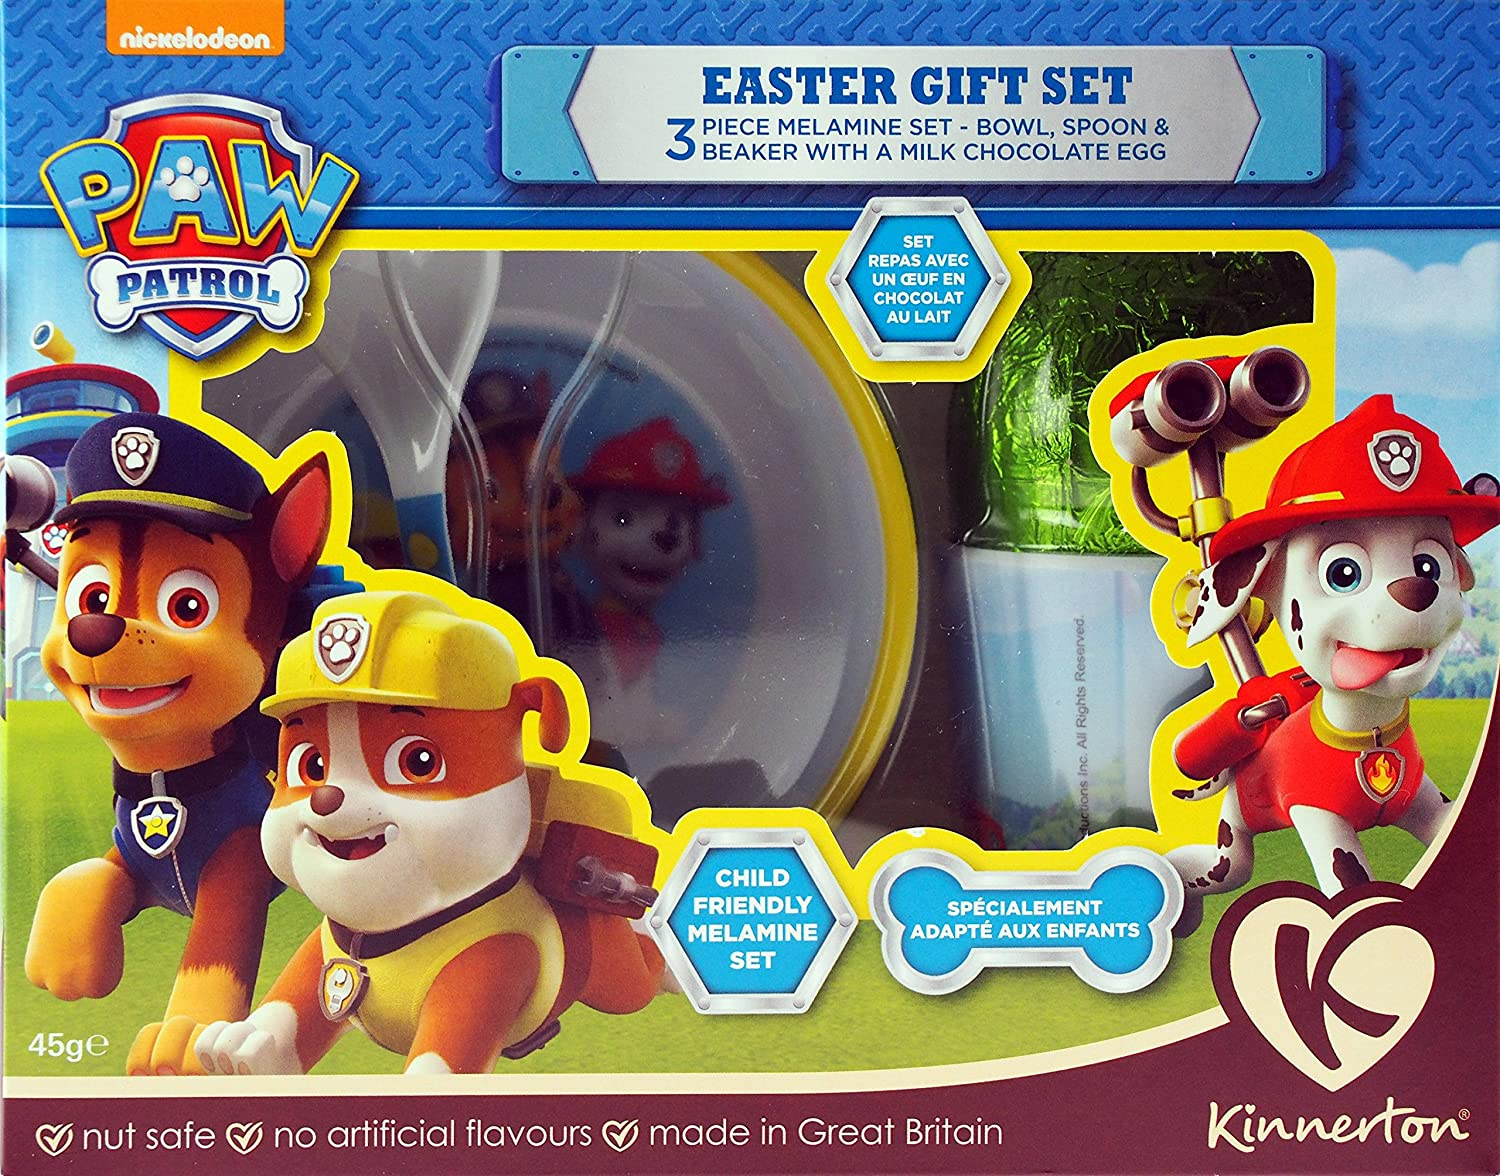 Paw patrol chocolate easter egg gift breakfast set bowl cup and paw patrol chocolate easter egg gift breakfast set bowl cup and spoon amazon kitchen home negle Image collections